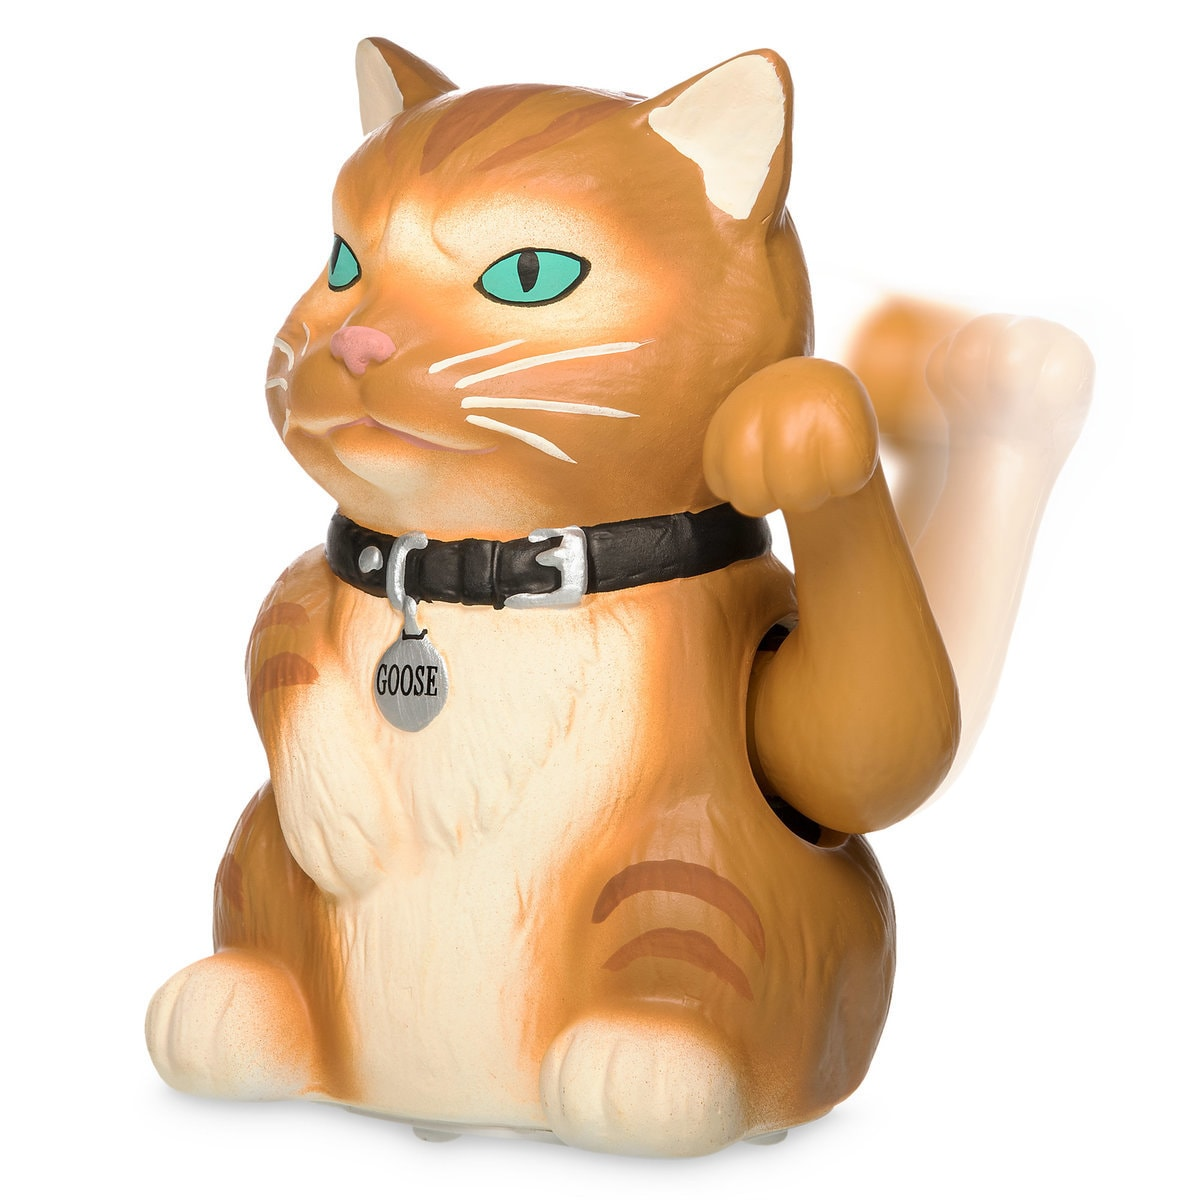 62d189f38 Goose the Cat Waving Statue - Marvel's Captain Marvel | shopDisney